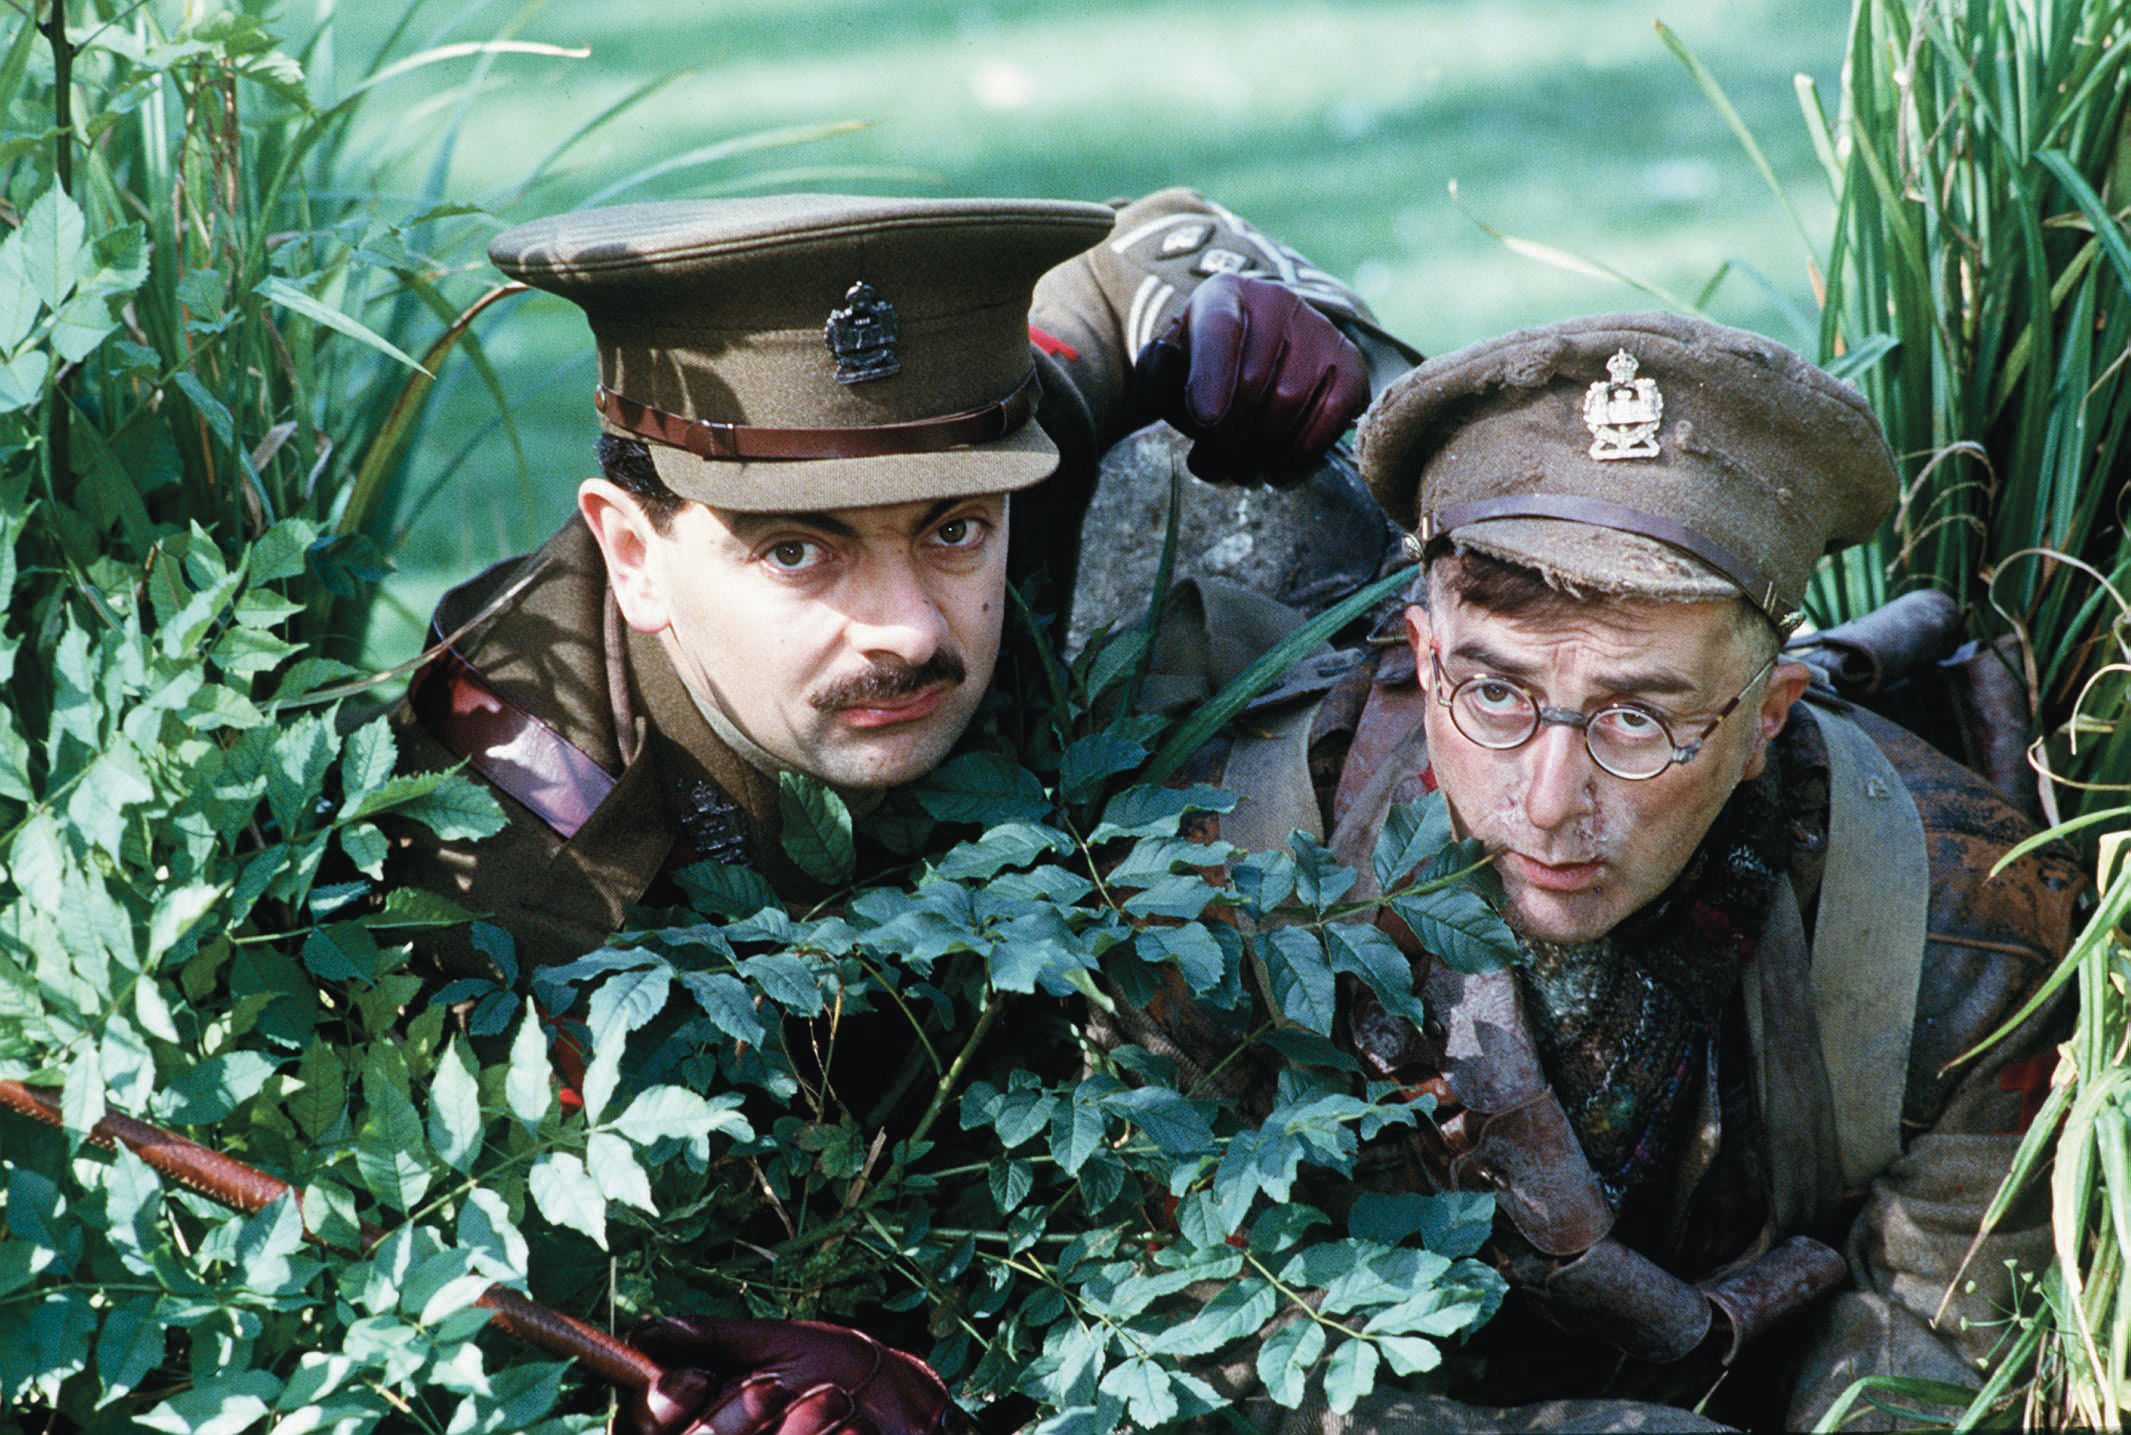 as Baldrick in Blackadder